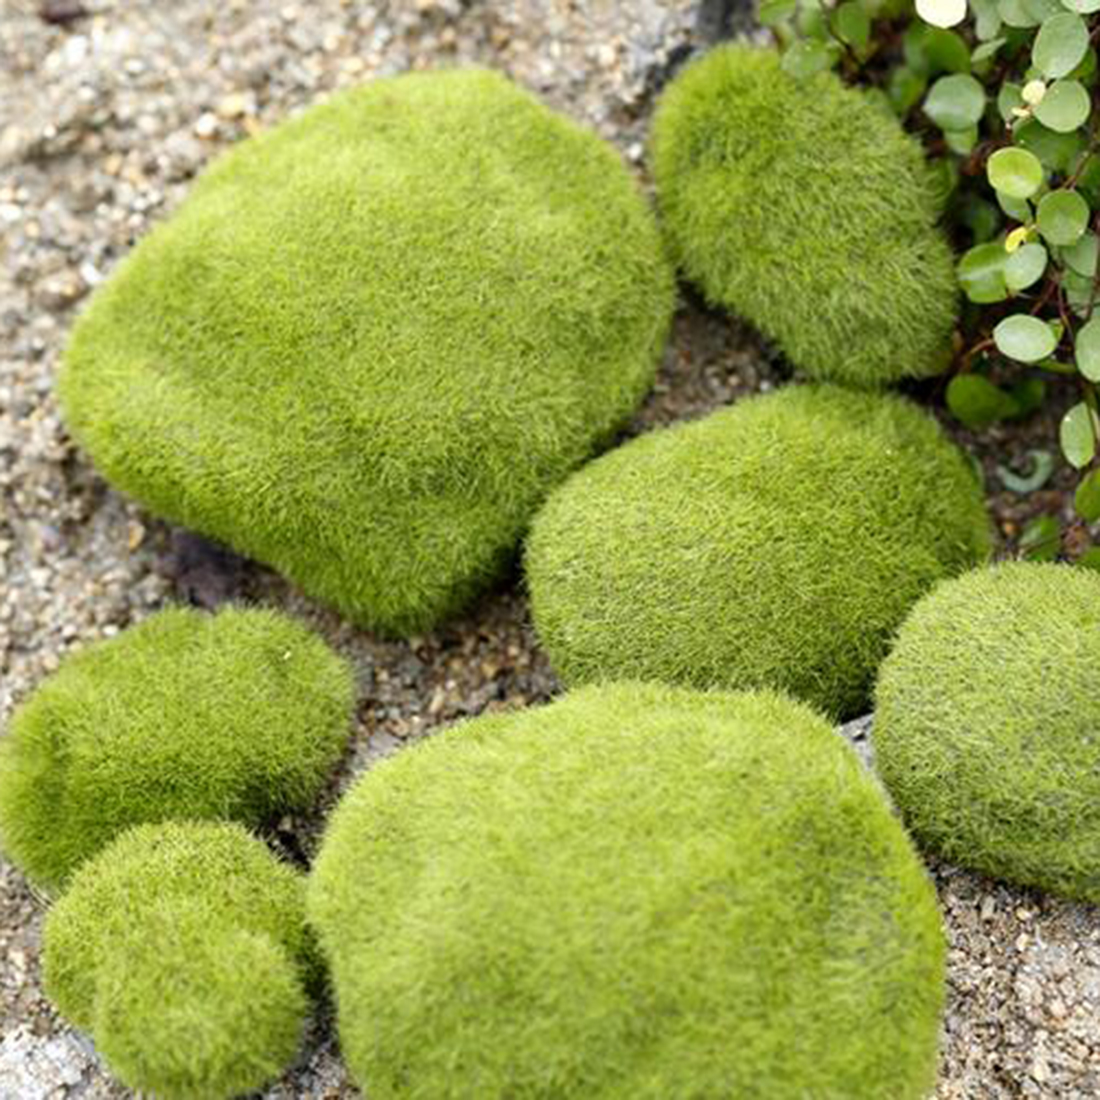 Hot Sale Green Moss Stone Garden Ornaments For Bonsai Display Nature Moss  Stone For Micro Landscape. Online Get Cheap Landscaping Tool  Aliexpress com   Alibaba Group